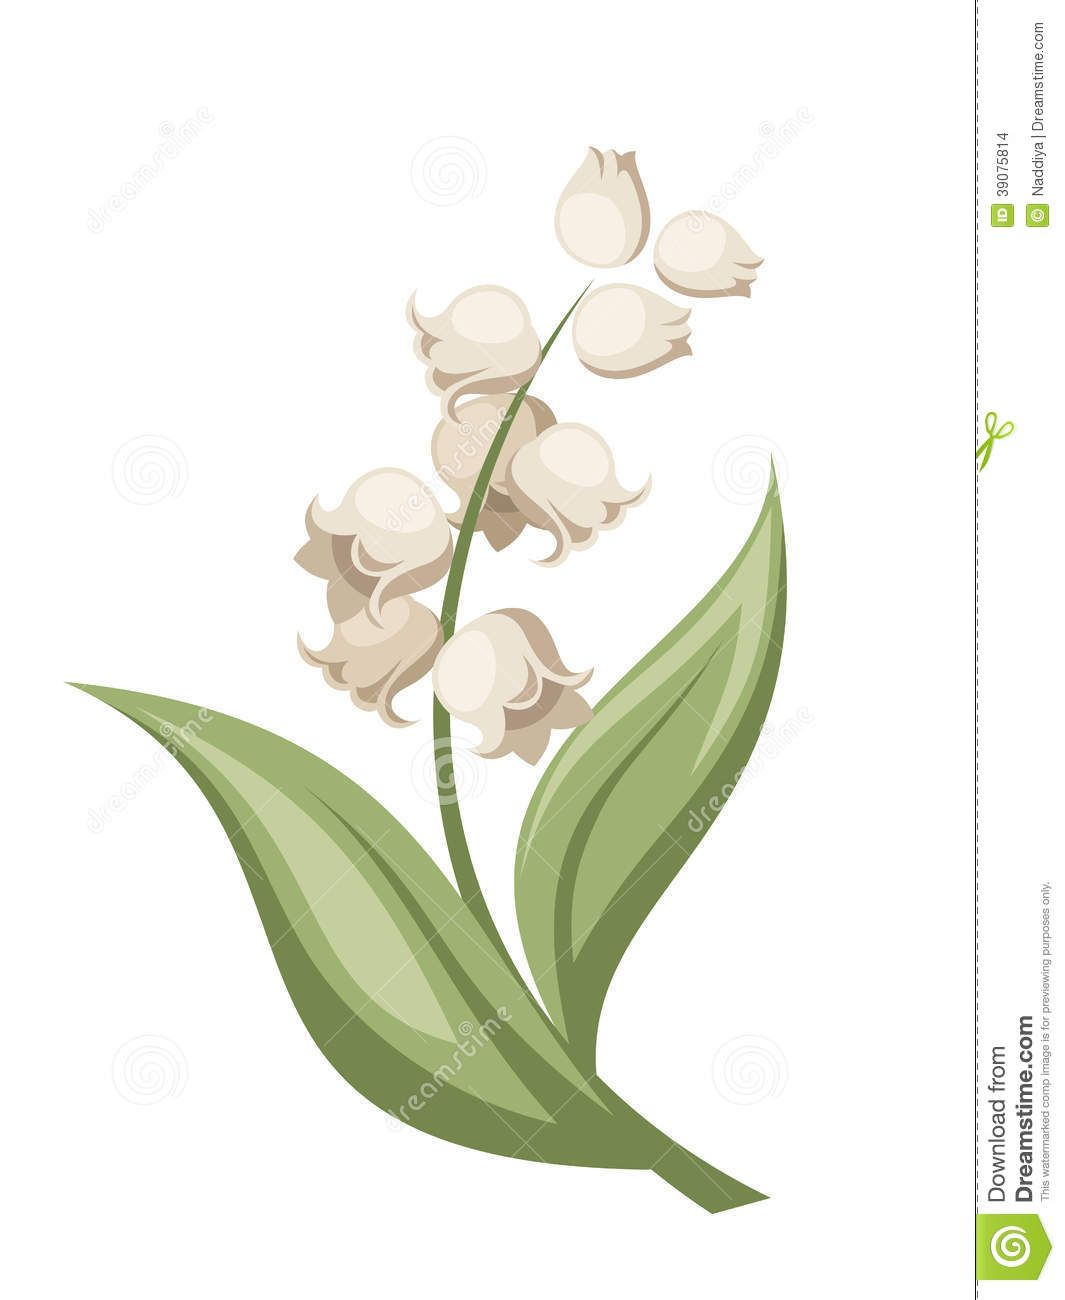 Valley with flowers clipart stock Lily Of The Valley Flower. Vector Illustration. Stock Vector ... stock